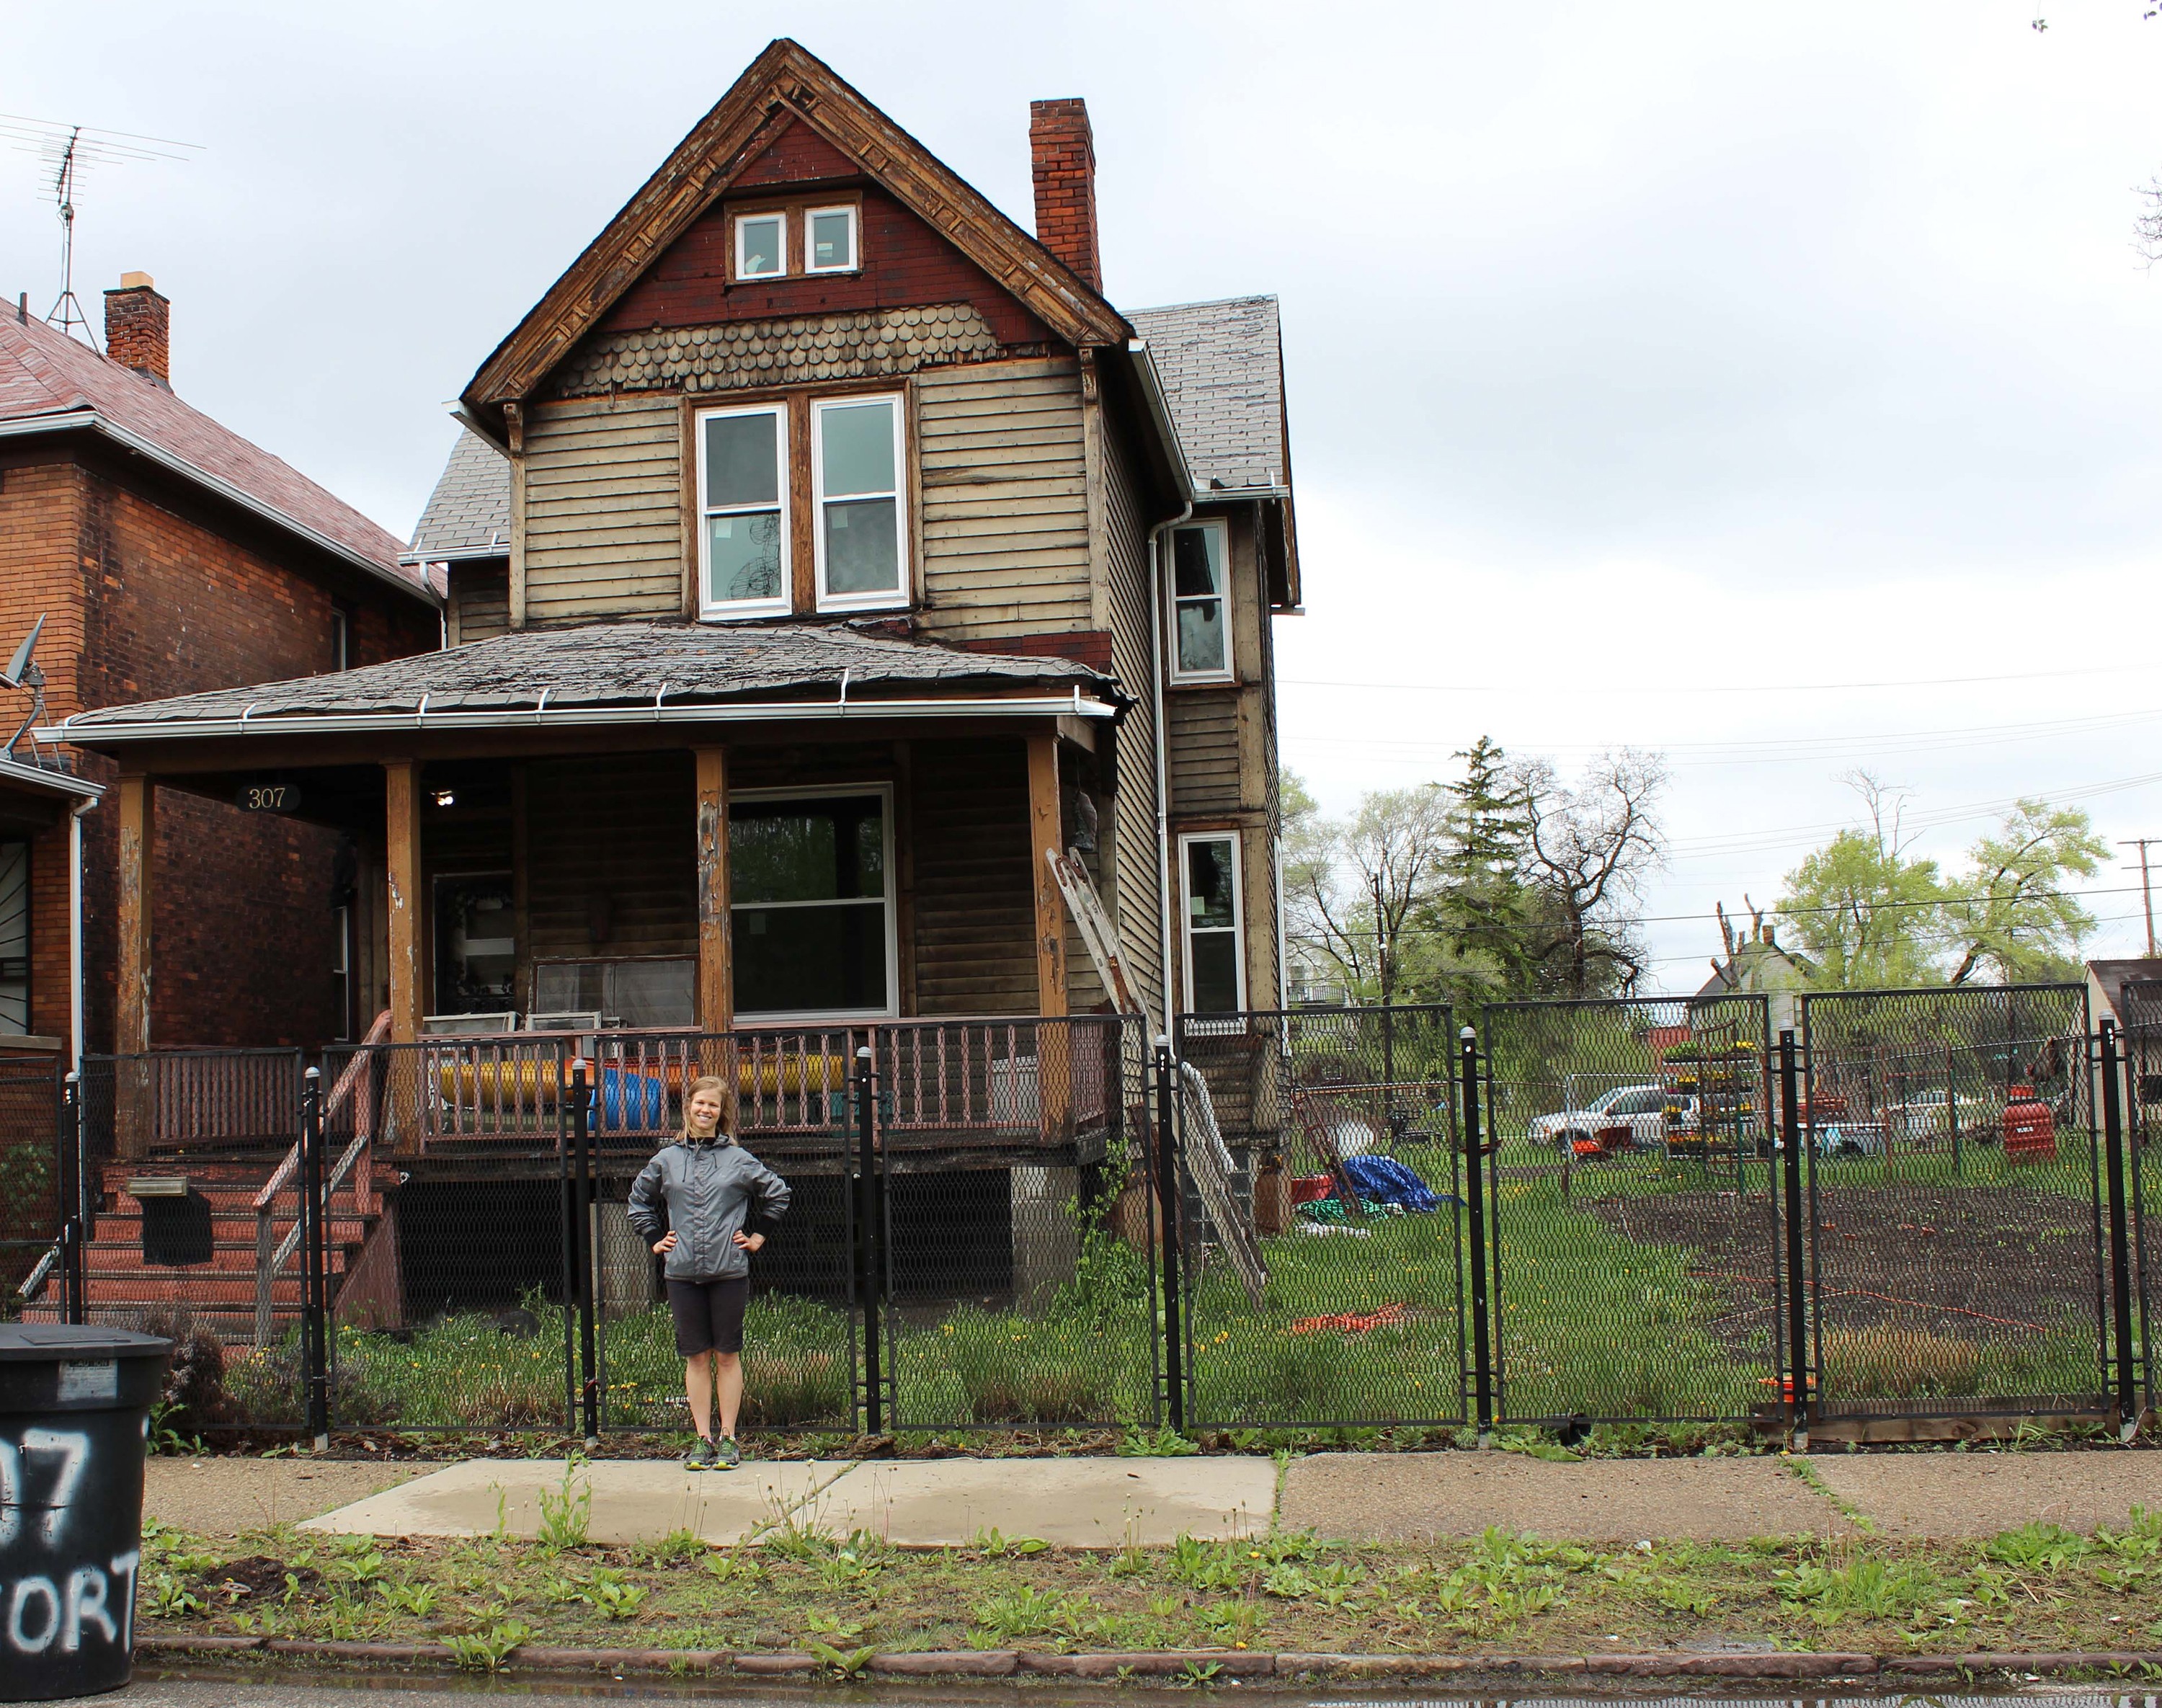 University of Michigan graduate student Lizzie Grobbel in front of the vacant Detroit house where she is raising shrimp, which she hopes to sell to restaurants, markets and others. Image credit: Lisa Pappas